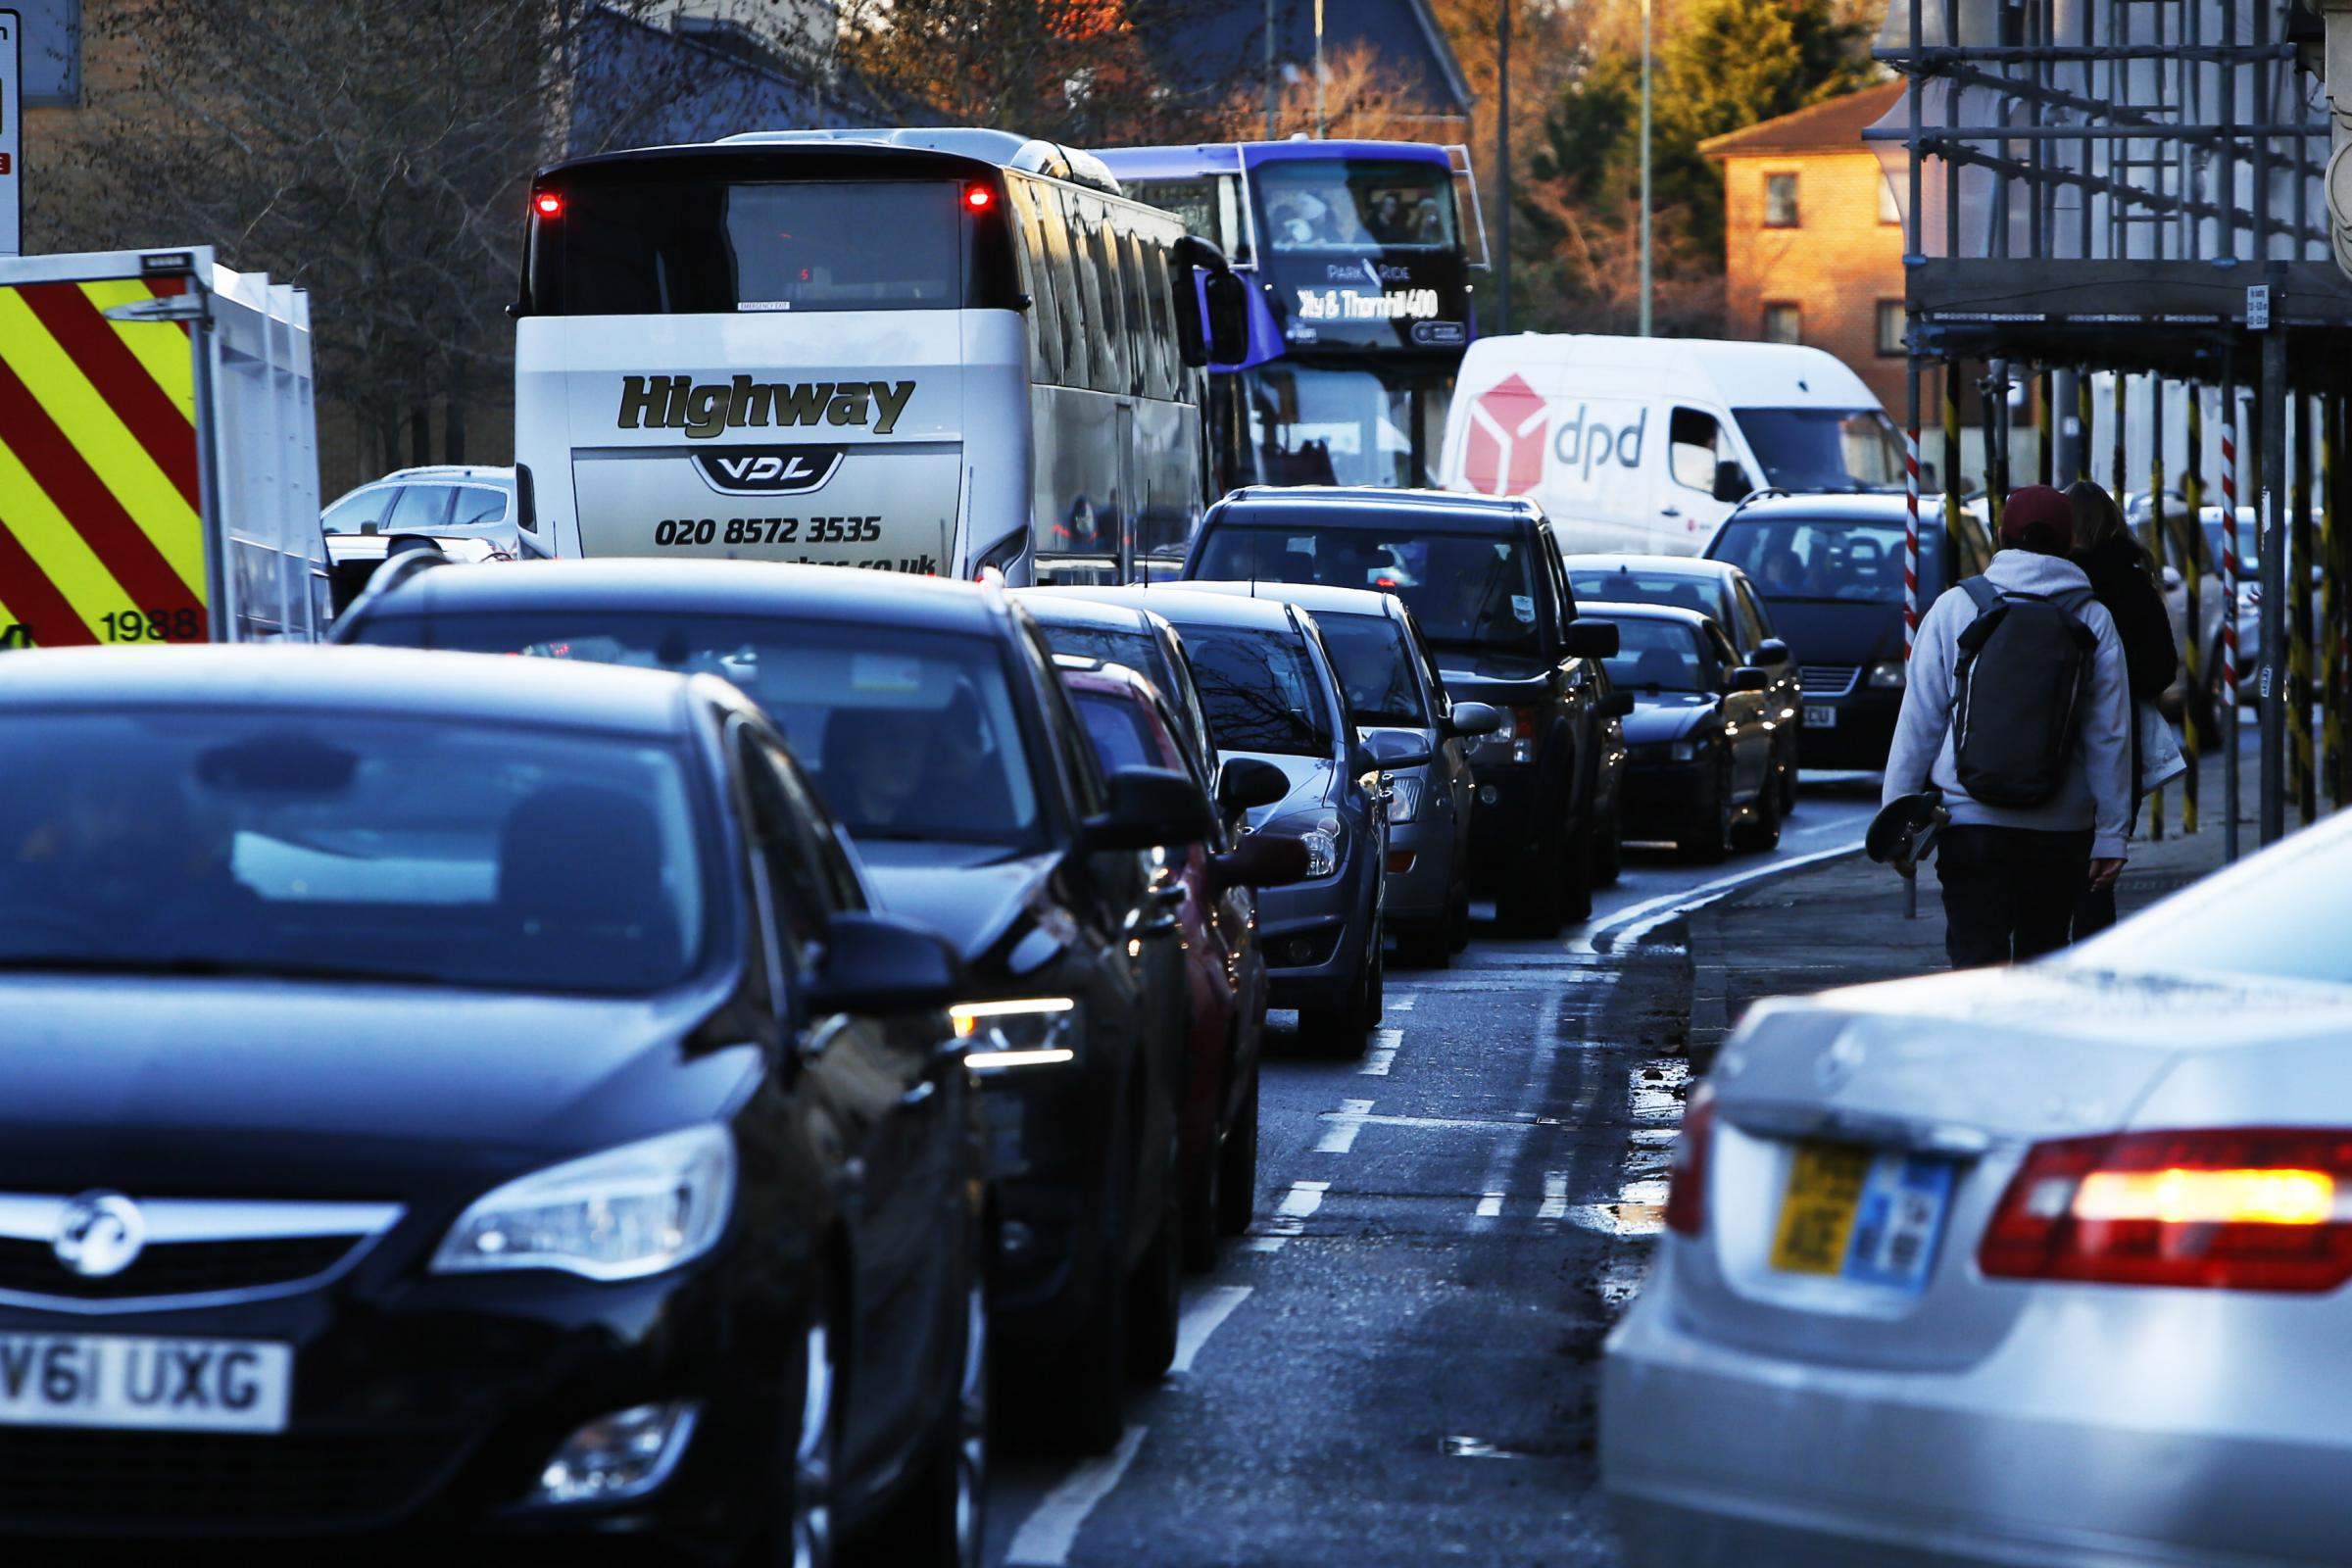 AS IT HAPPENS: Oxford traffic news during evening rush hour